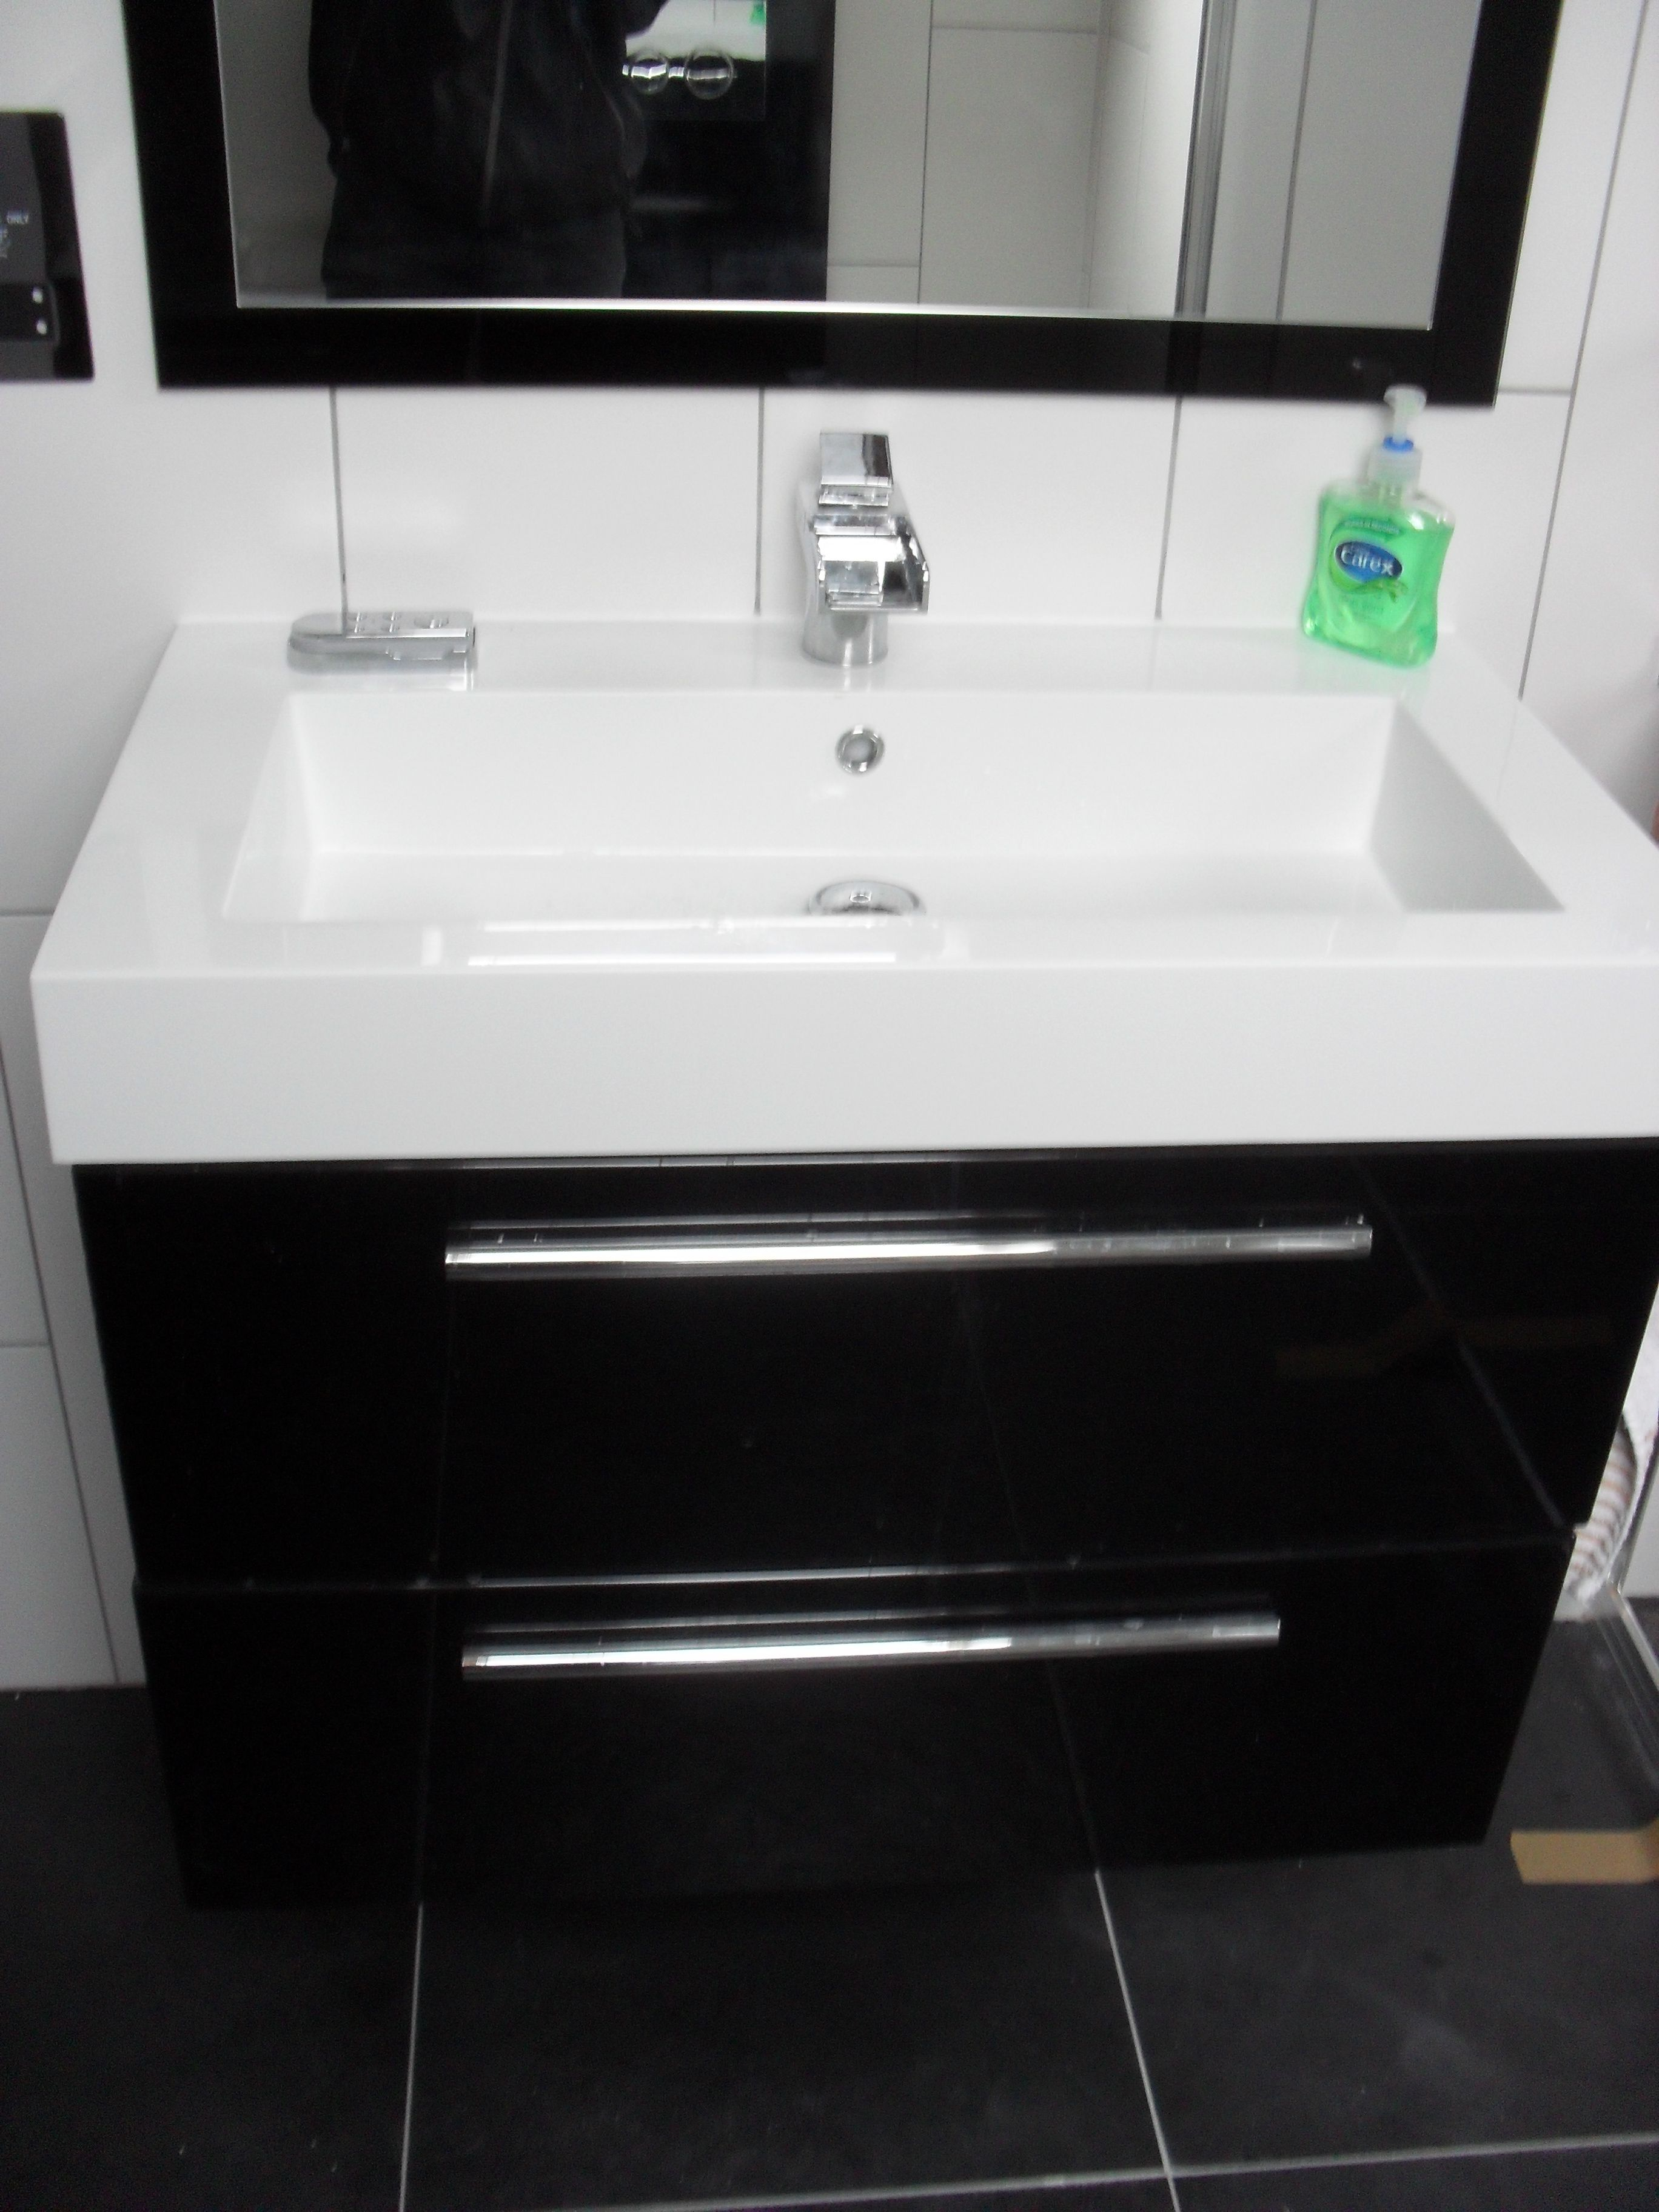 Utopia Modular Basin U0026 Vanity And The Amazing Crosswater Water Square Tap  That Lights The Water